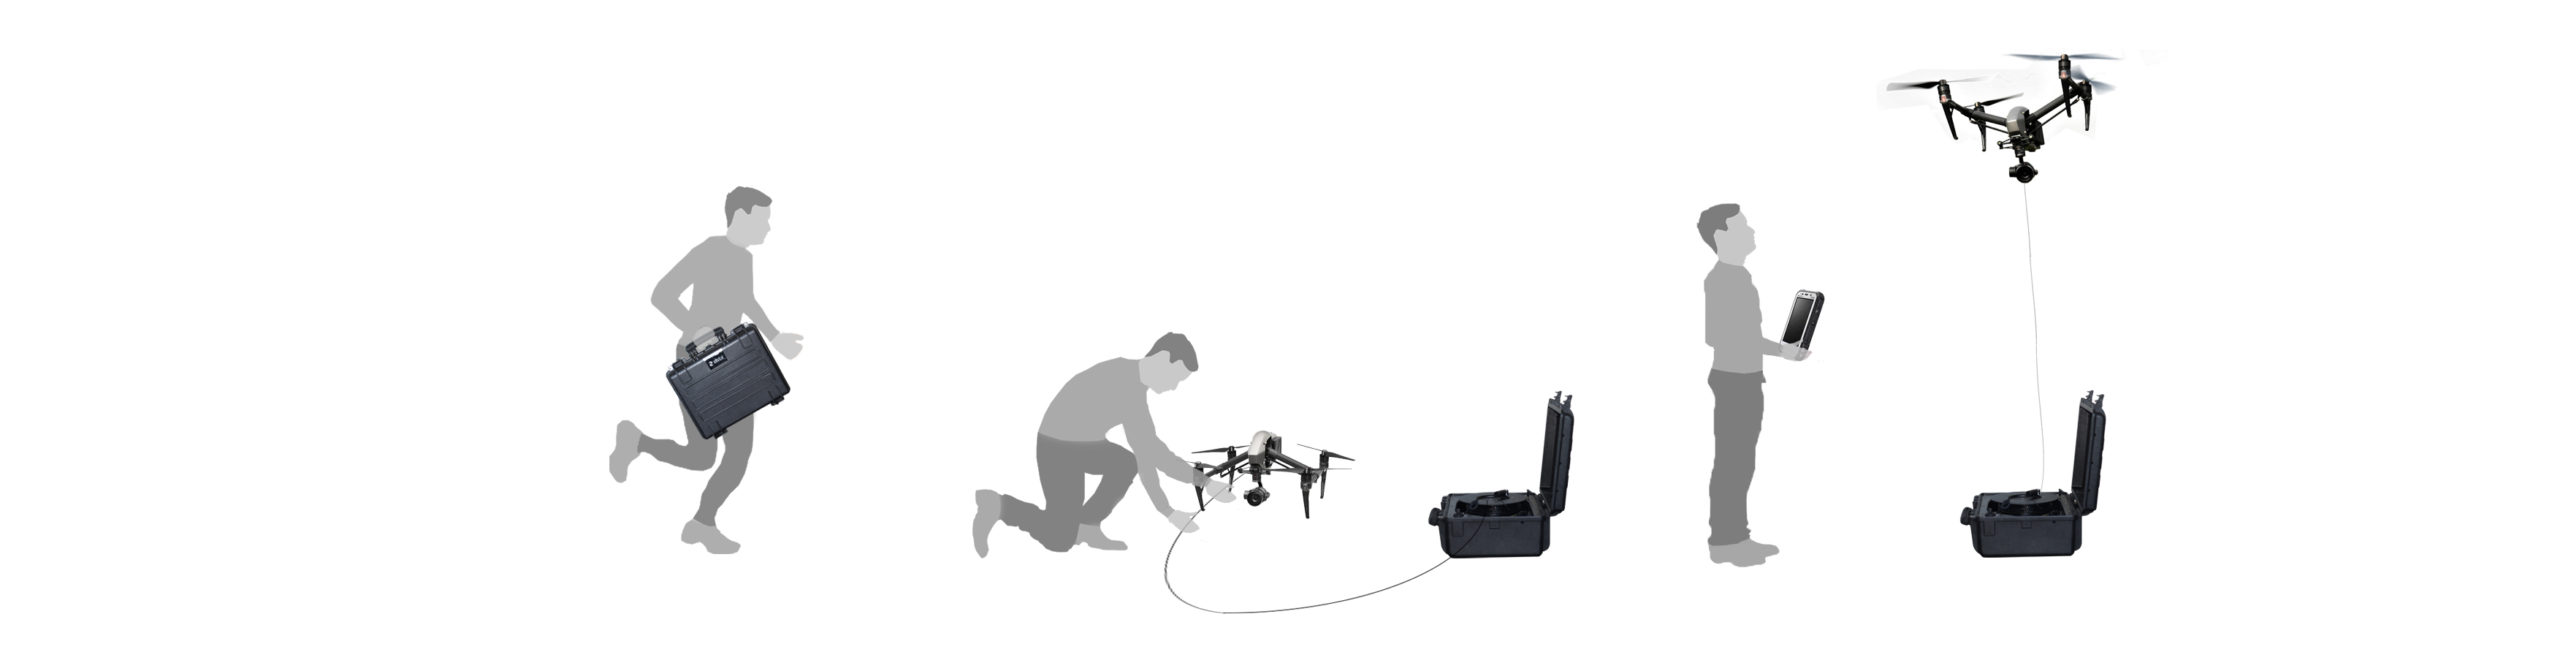 Ligh-T V.3 tethered drone station can be easily transportable, deployable and operable